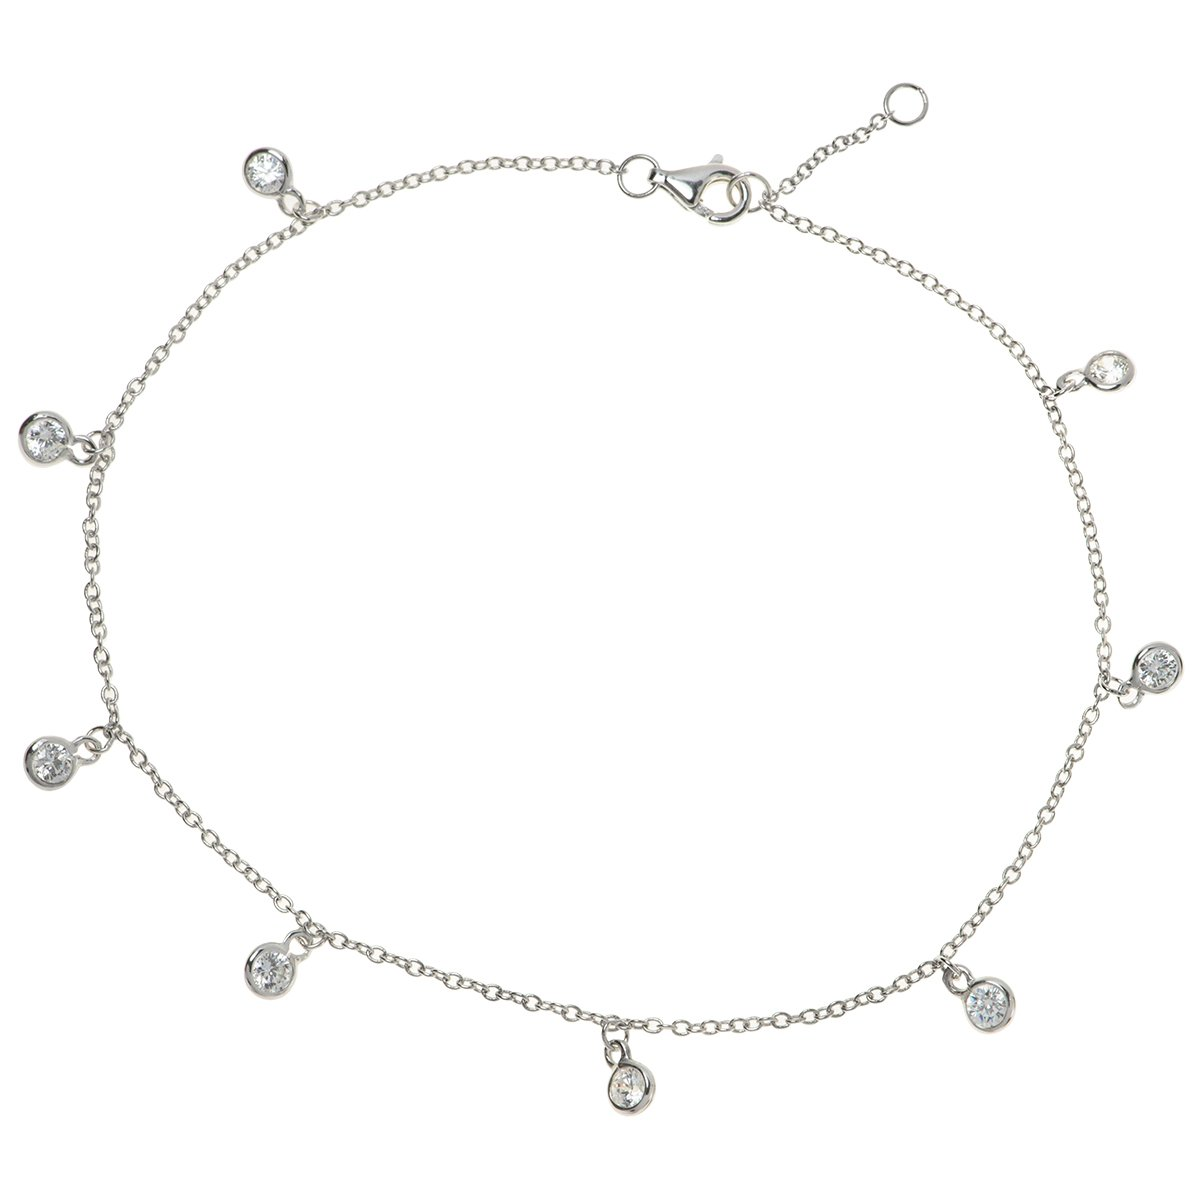 Rhodium On 925 Sterling Silver Round Bridal Wedding Clear Cz Crystal Dangle Charm Link Rolo Cable Chain Anklet Bracelet with Extender Lobster Clasp 9''